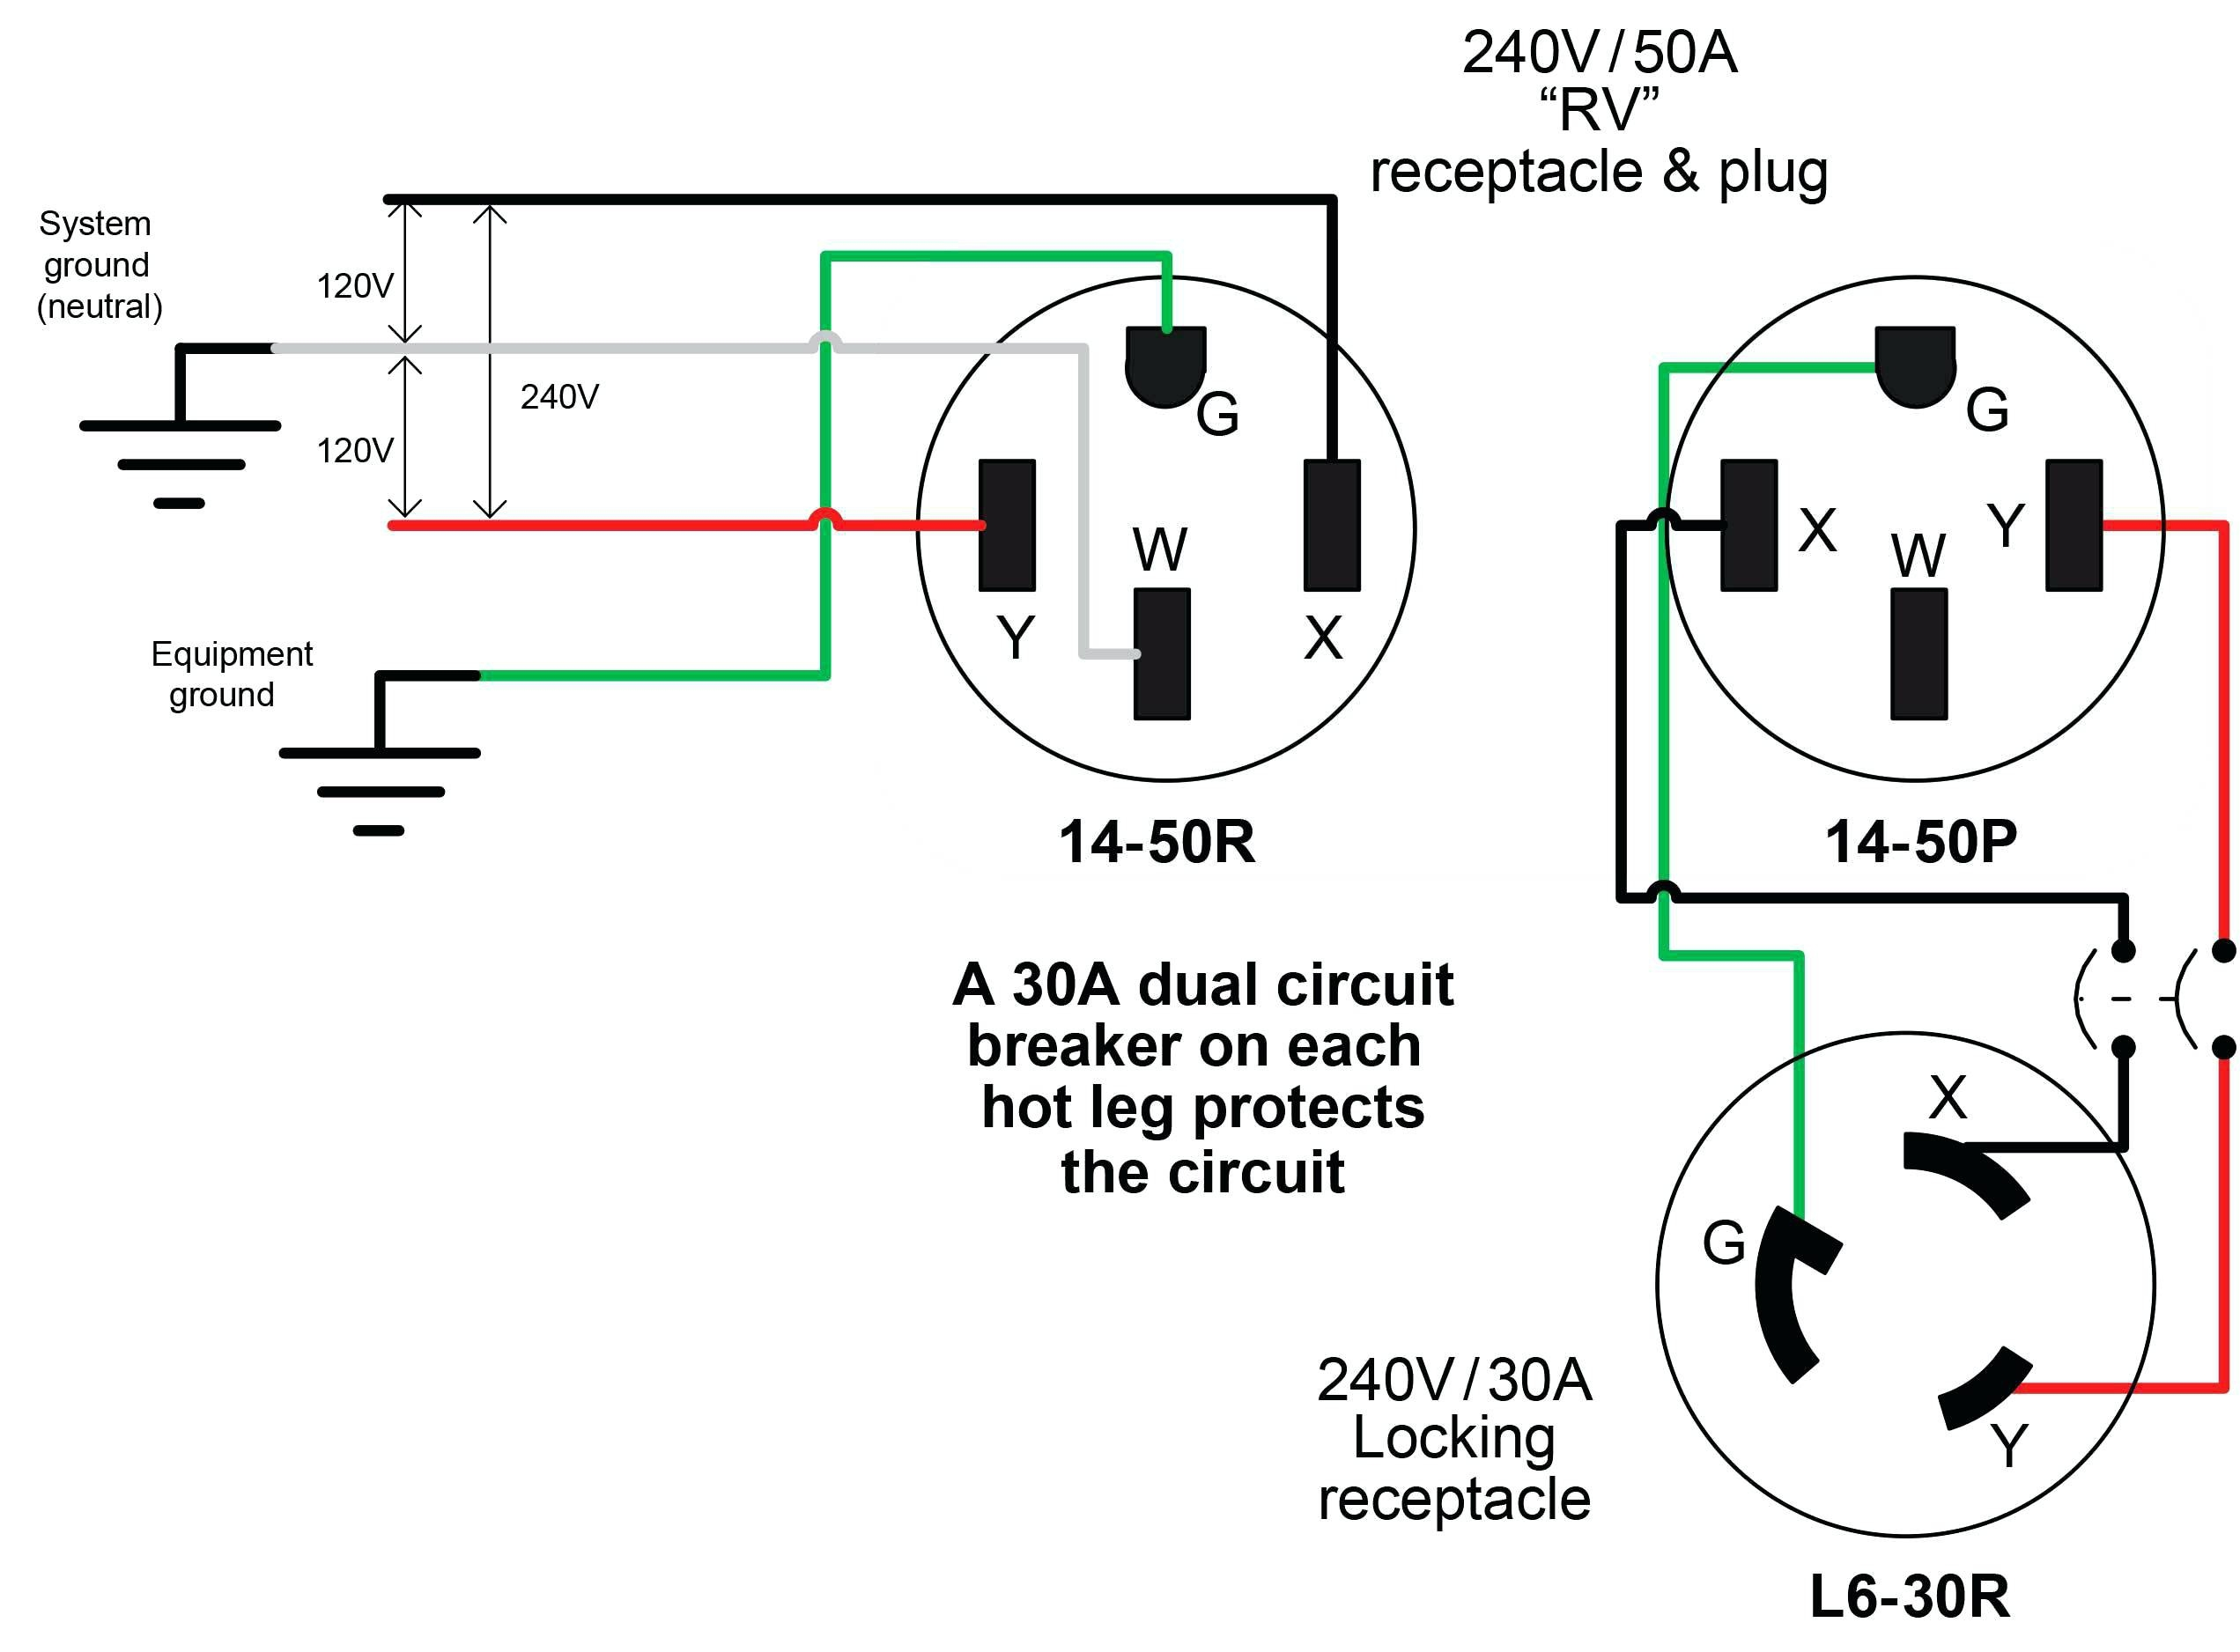 4 wire 220 dryer schematic diagram wiring diagram 3 Wire Connection On 240 Volt Dryer Diagram 240 volt dryer plug wiring wiring